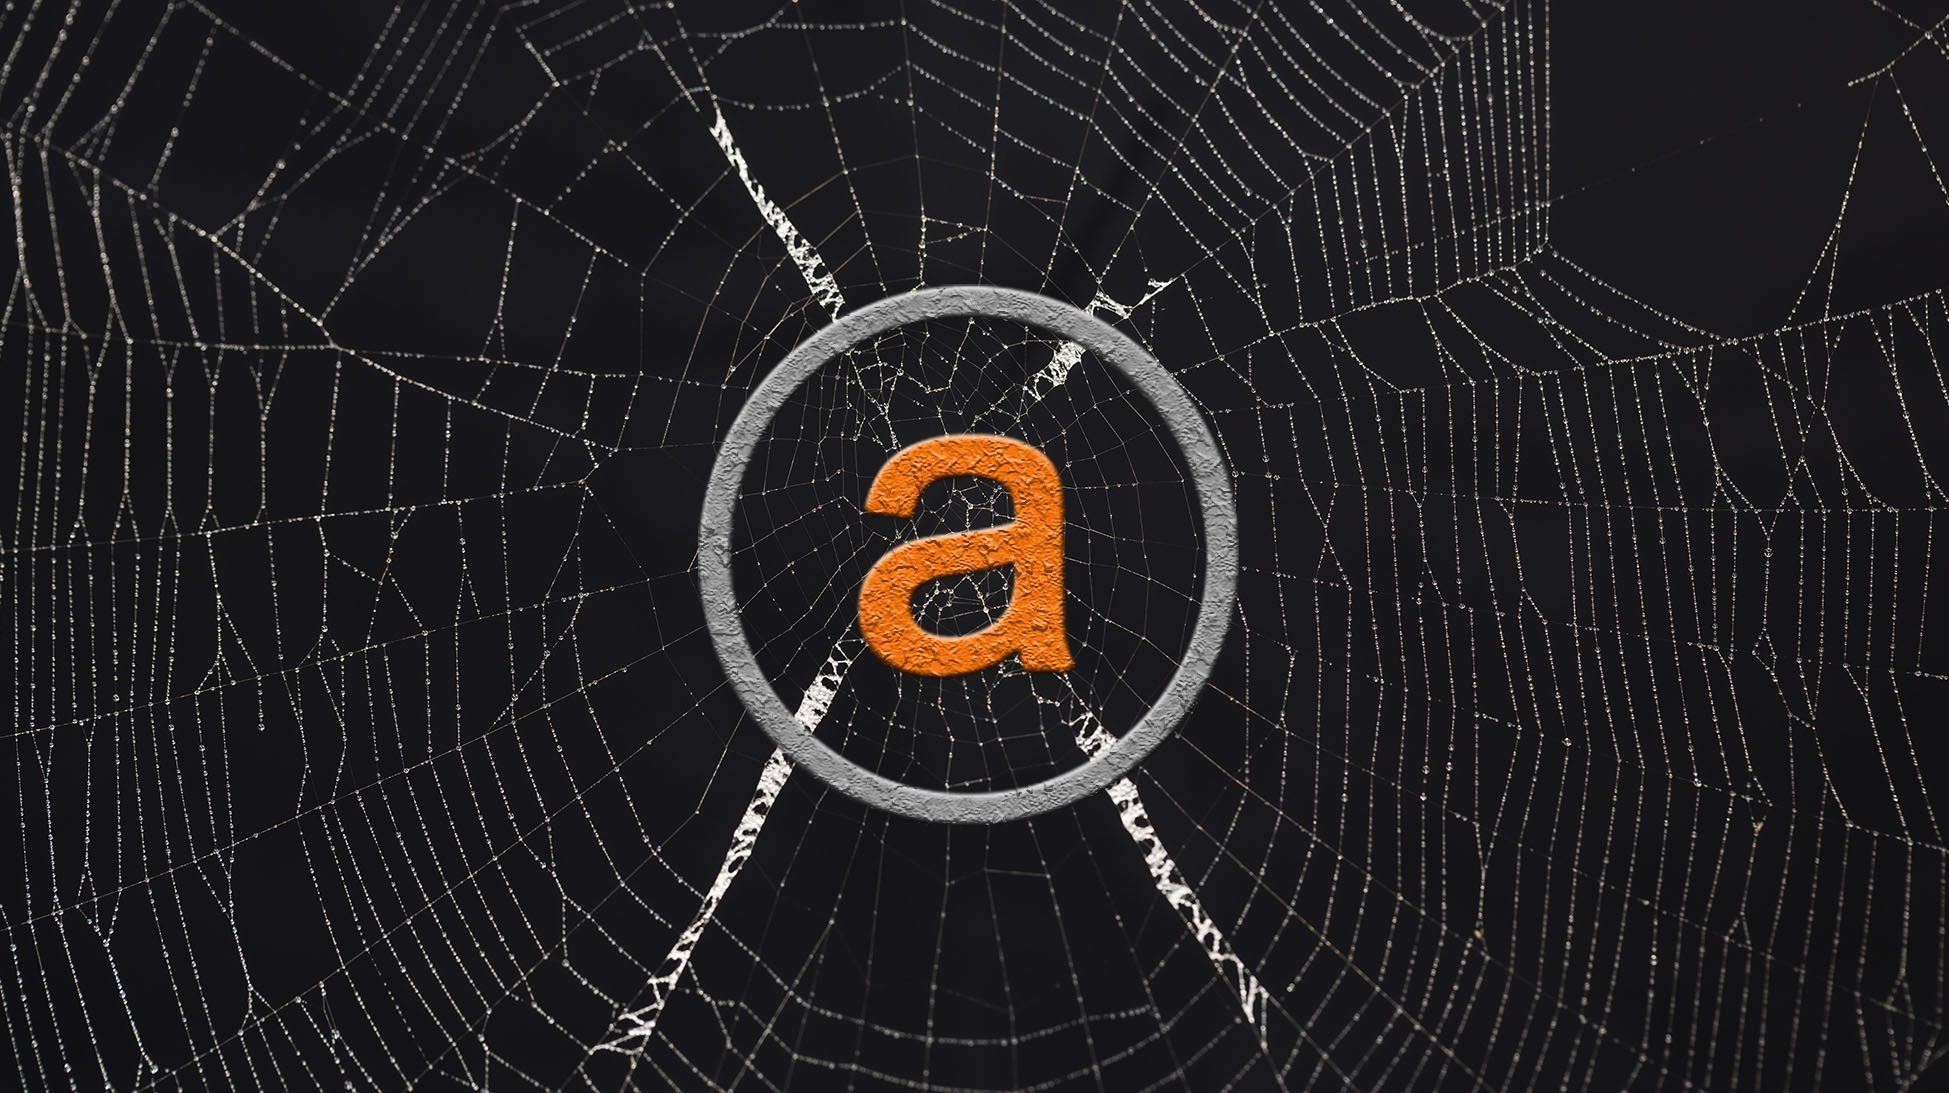 AlphaBay Went Down a Week Ago: Customers Looking for Alternatives